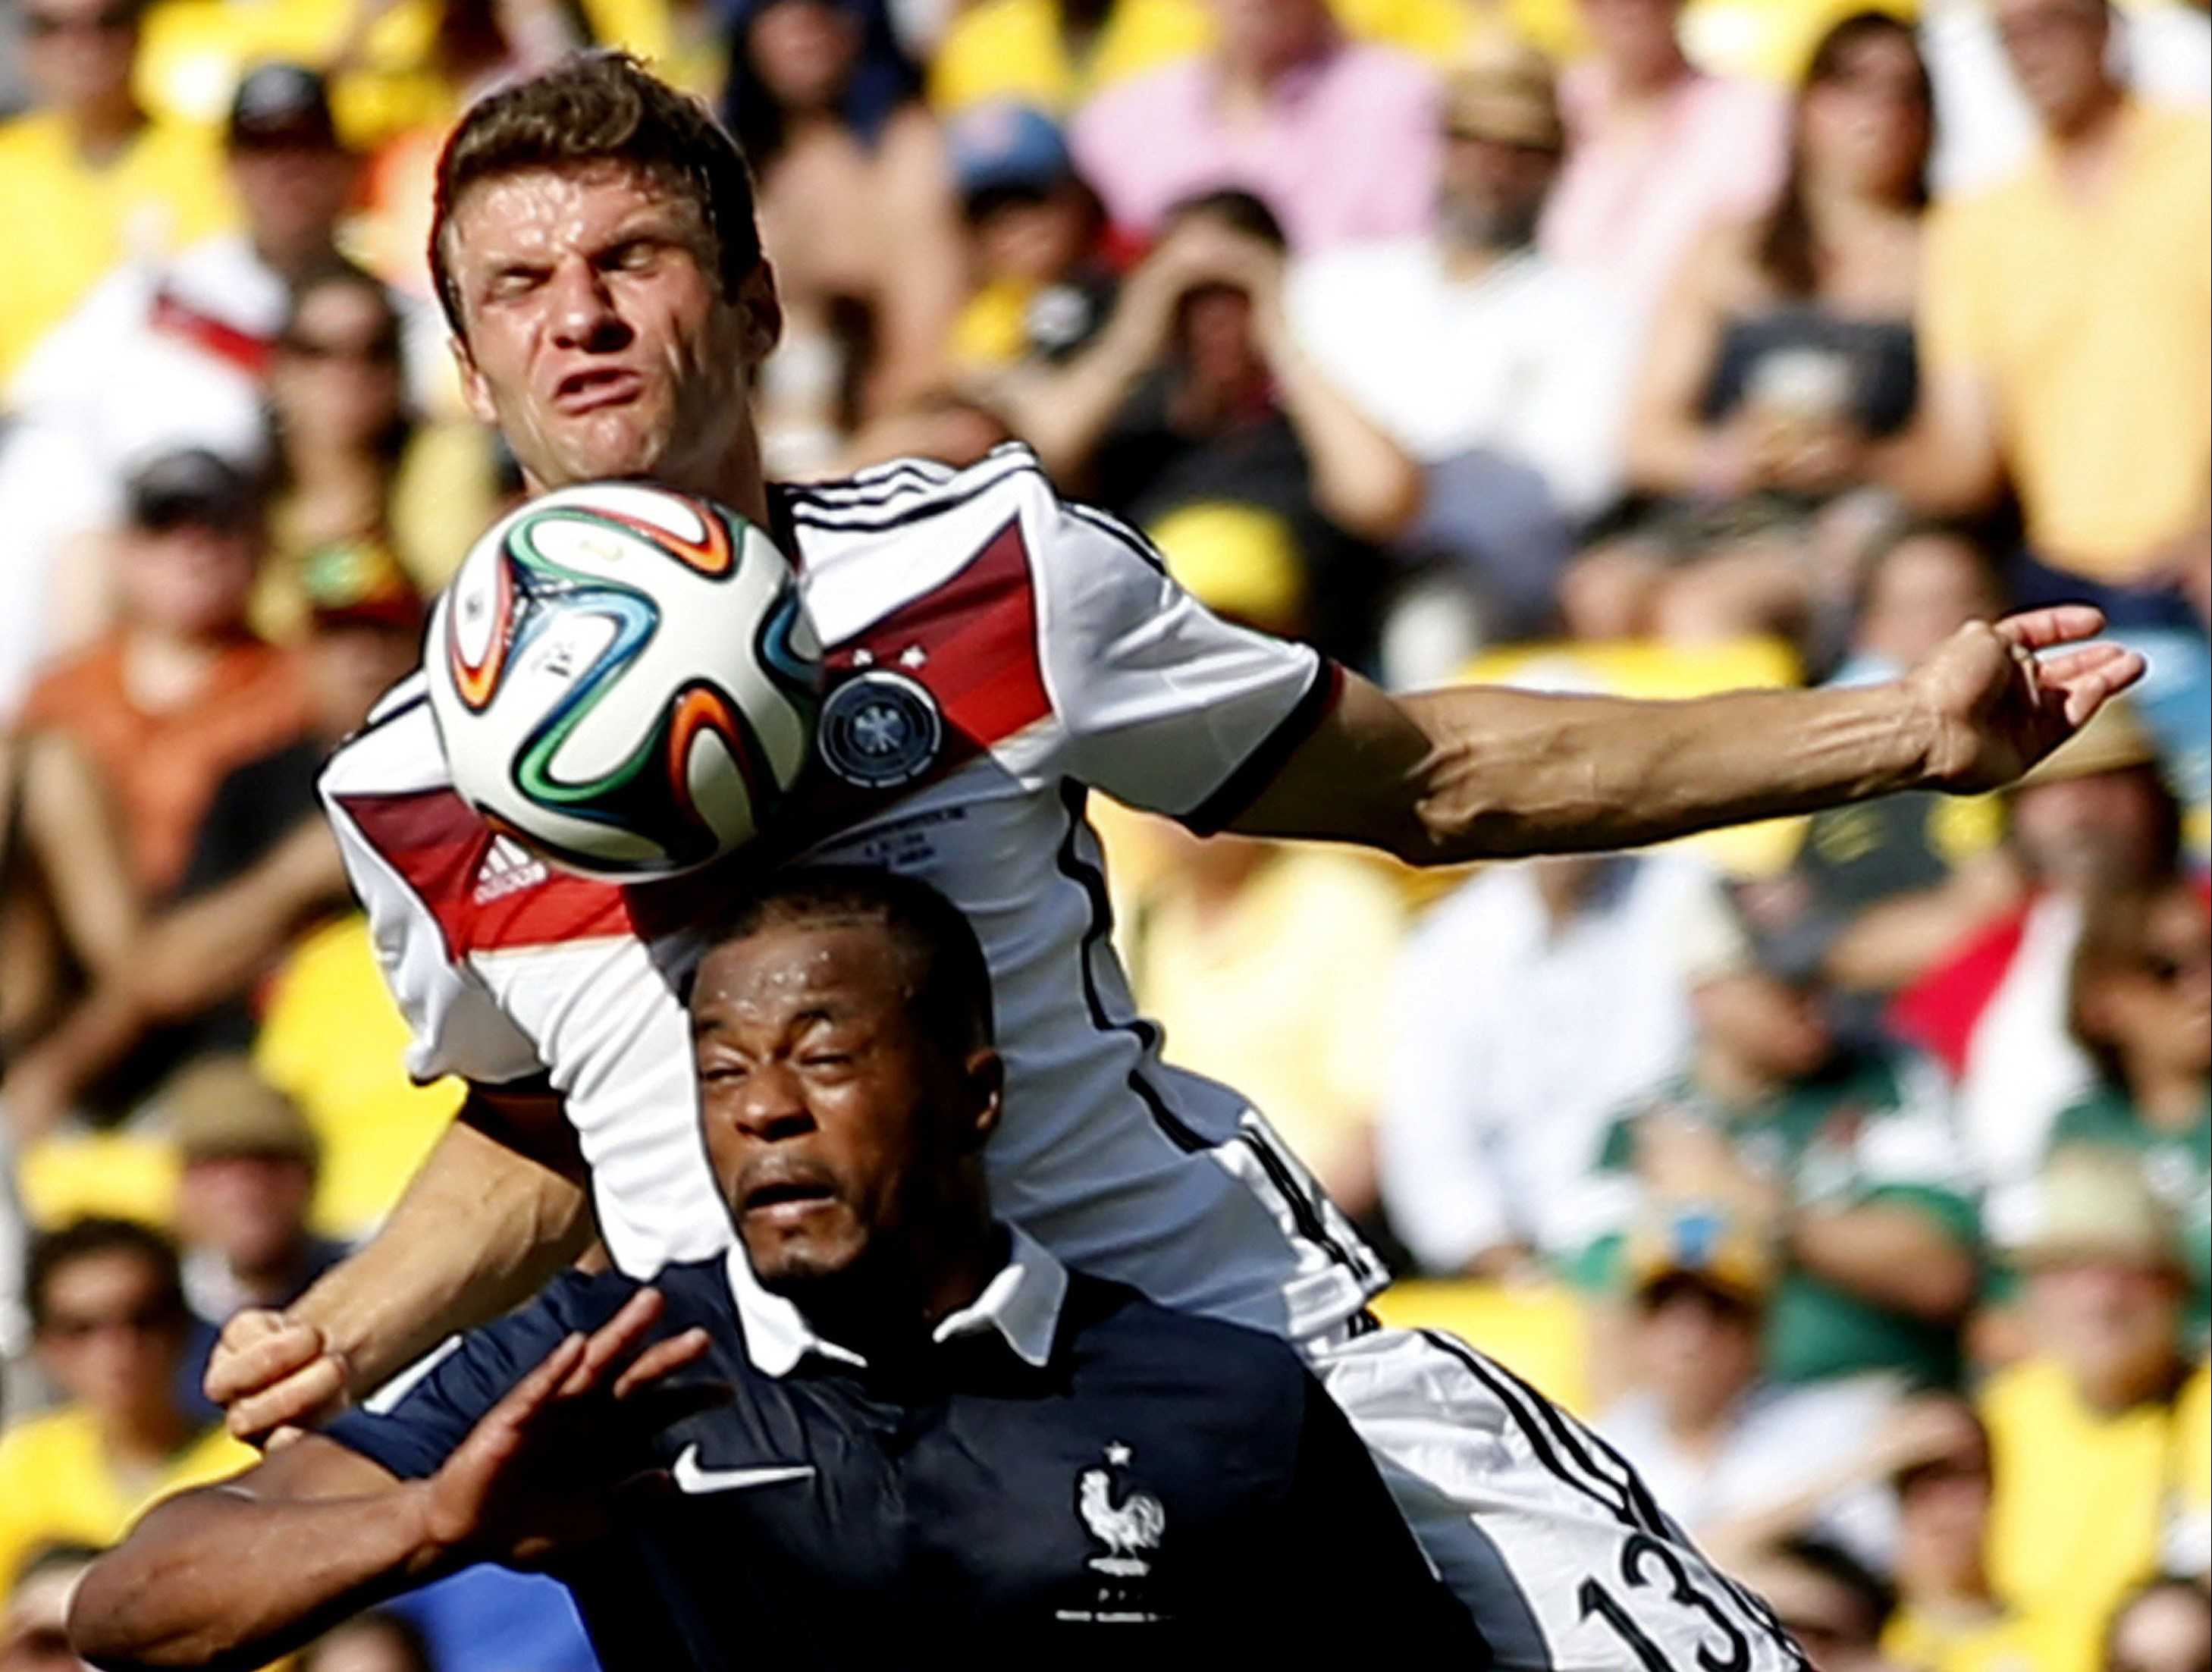 Germany's Thomas Muller vies with France's Patrice Evra (3) during a FIFA World Cup quarterfinal match at the Estadio do Maracana Stadium in Rio de Janeiro, Brazil. Germany advanced, 1-0. (Wang Lili/Xinhua/Zuma Press/MCT)